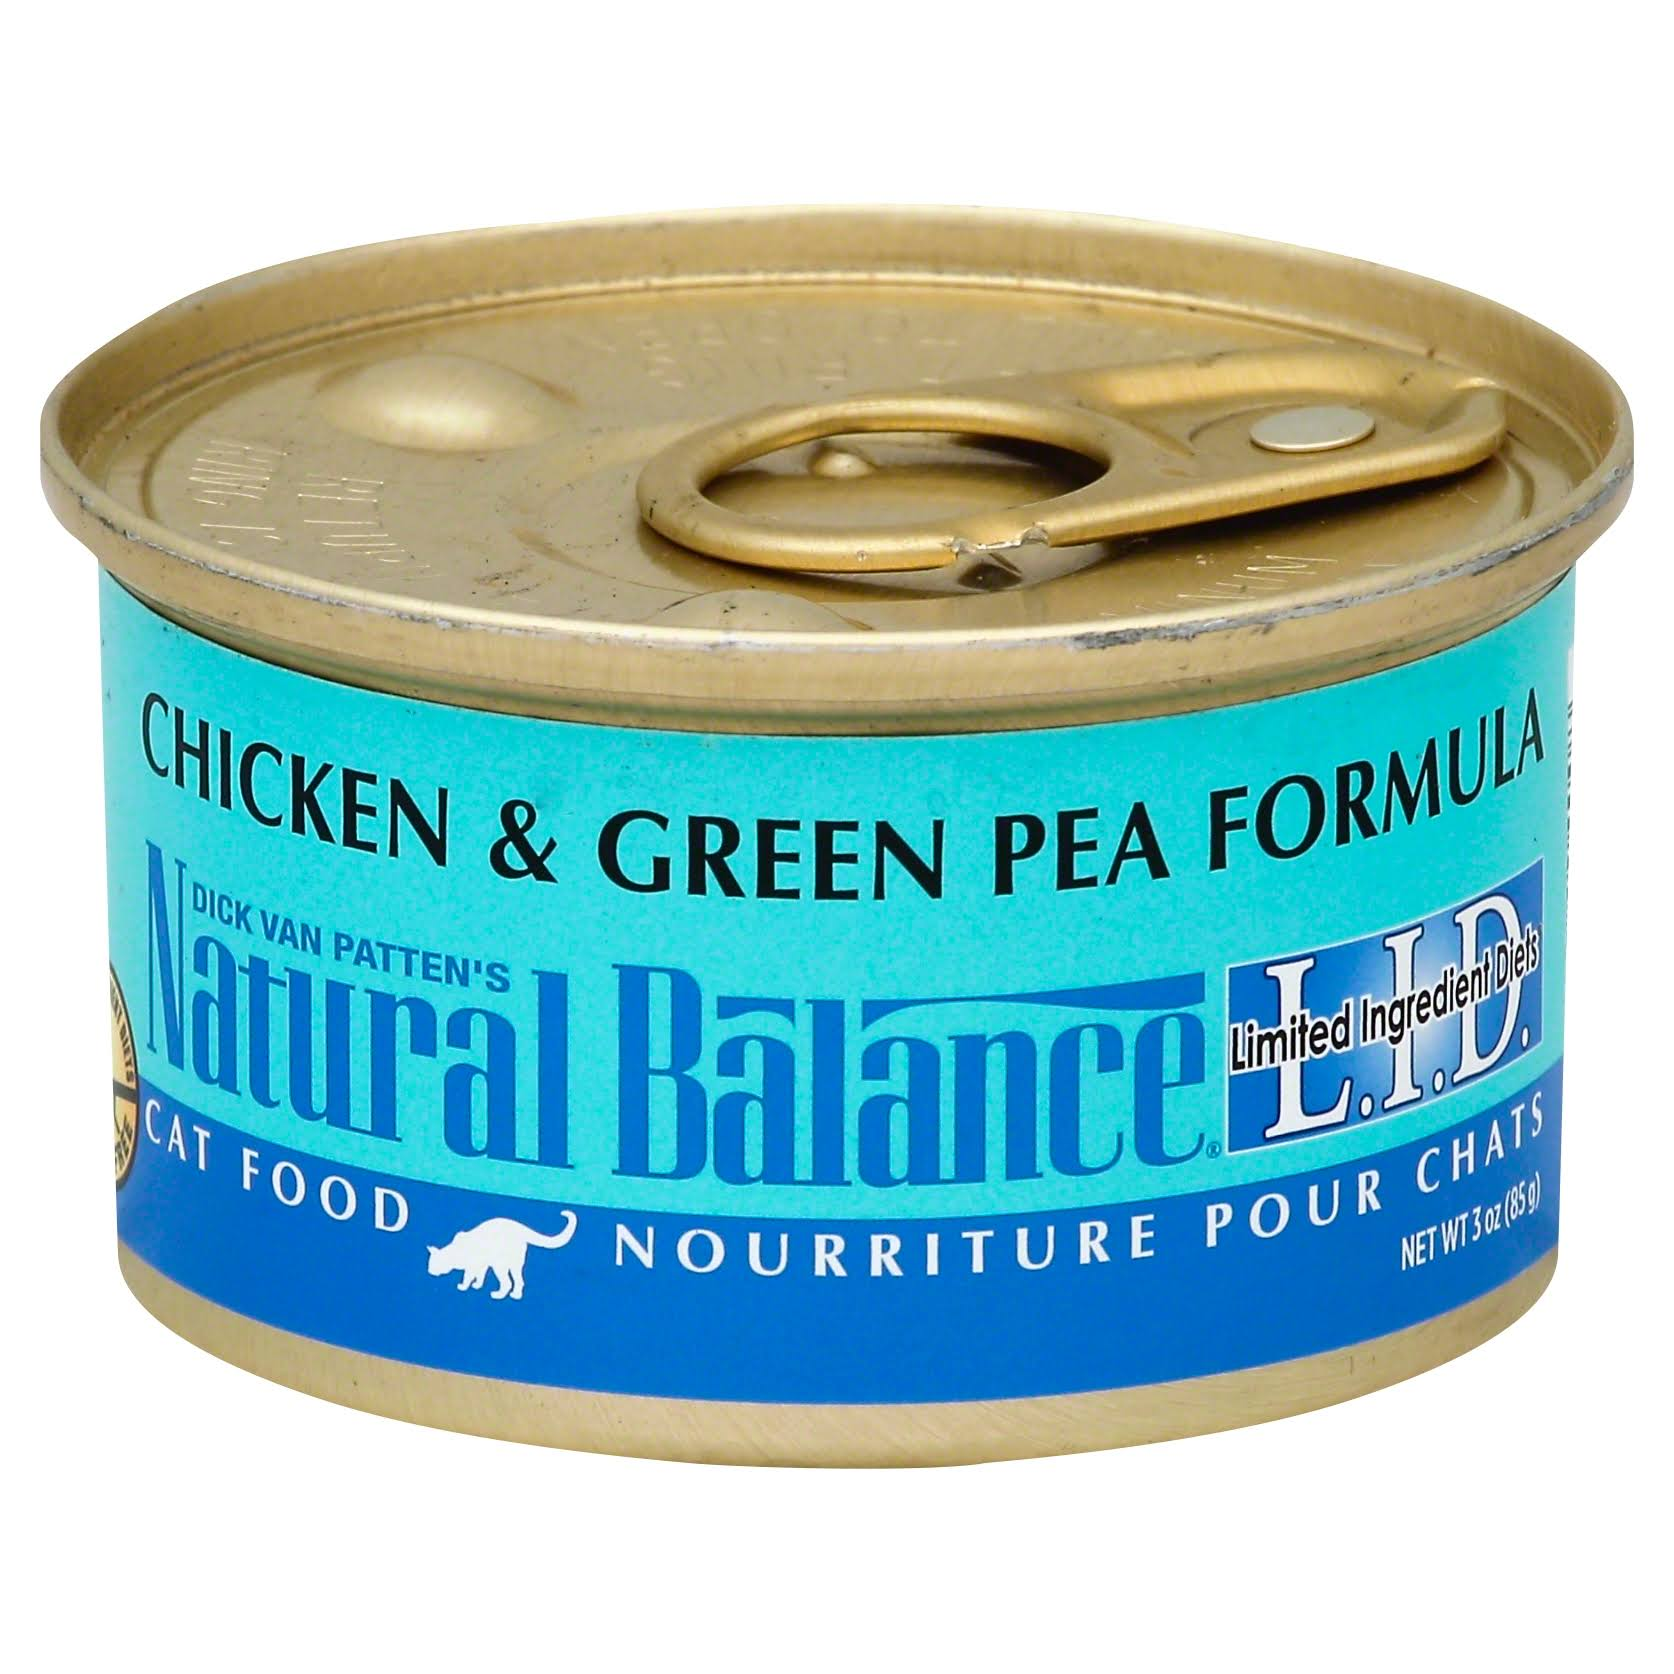 Natural Balance Limited Ingredient Diets Wet Cat Food - Chicken and Green Pea Formula, 3oz